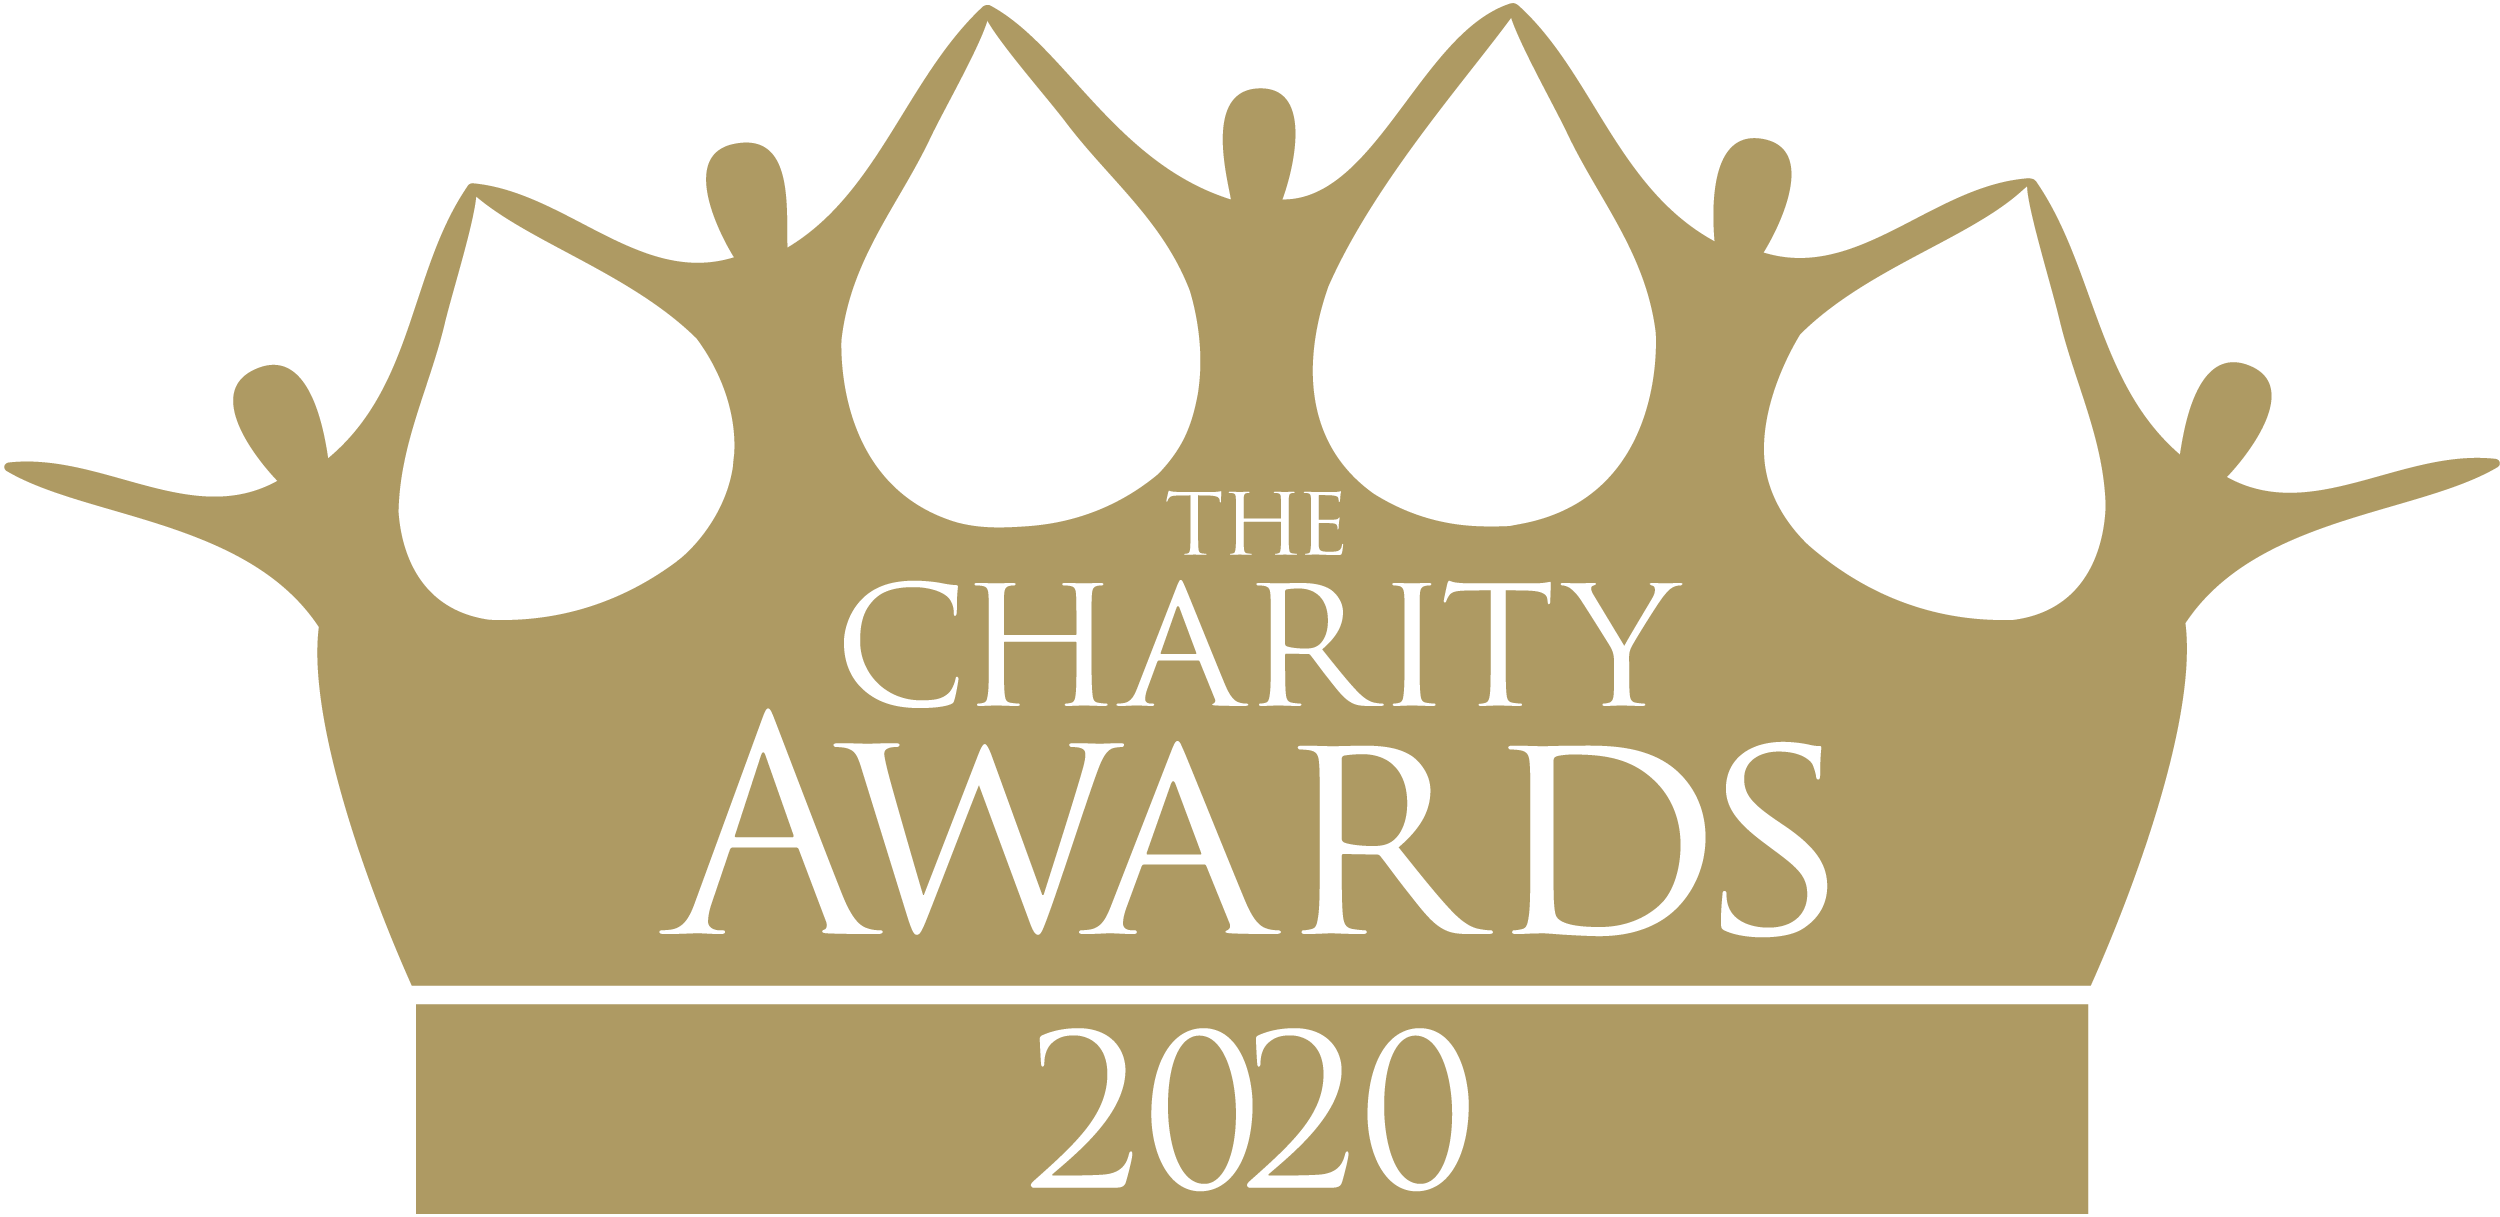 Charity Awards 2020